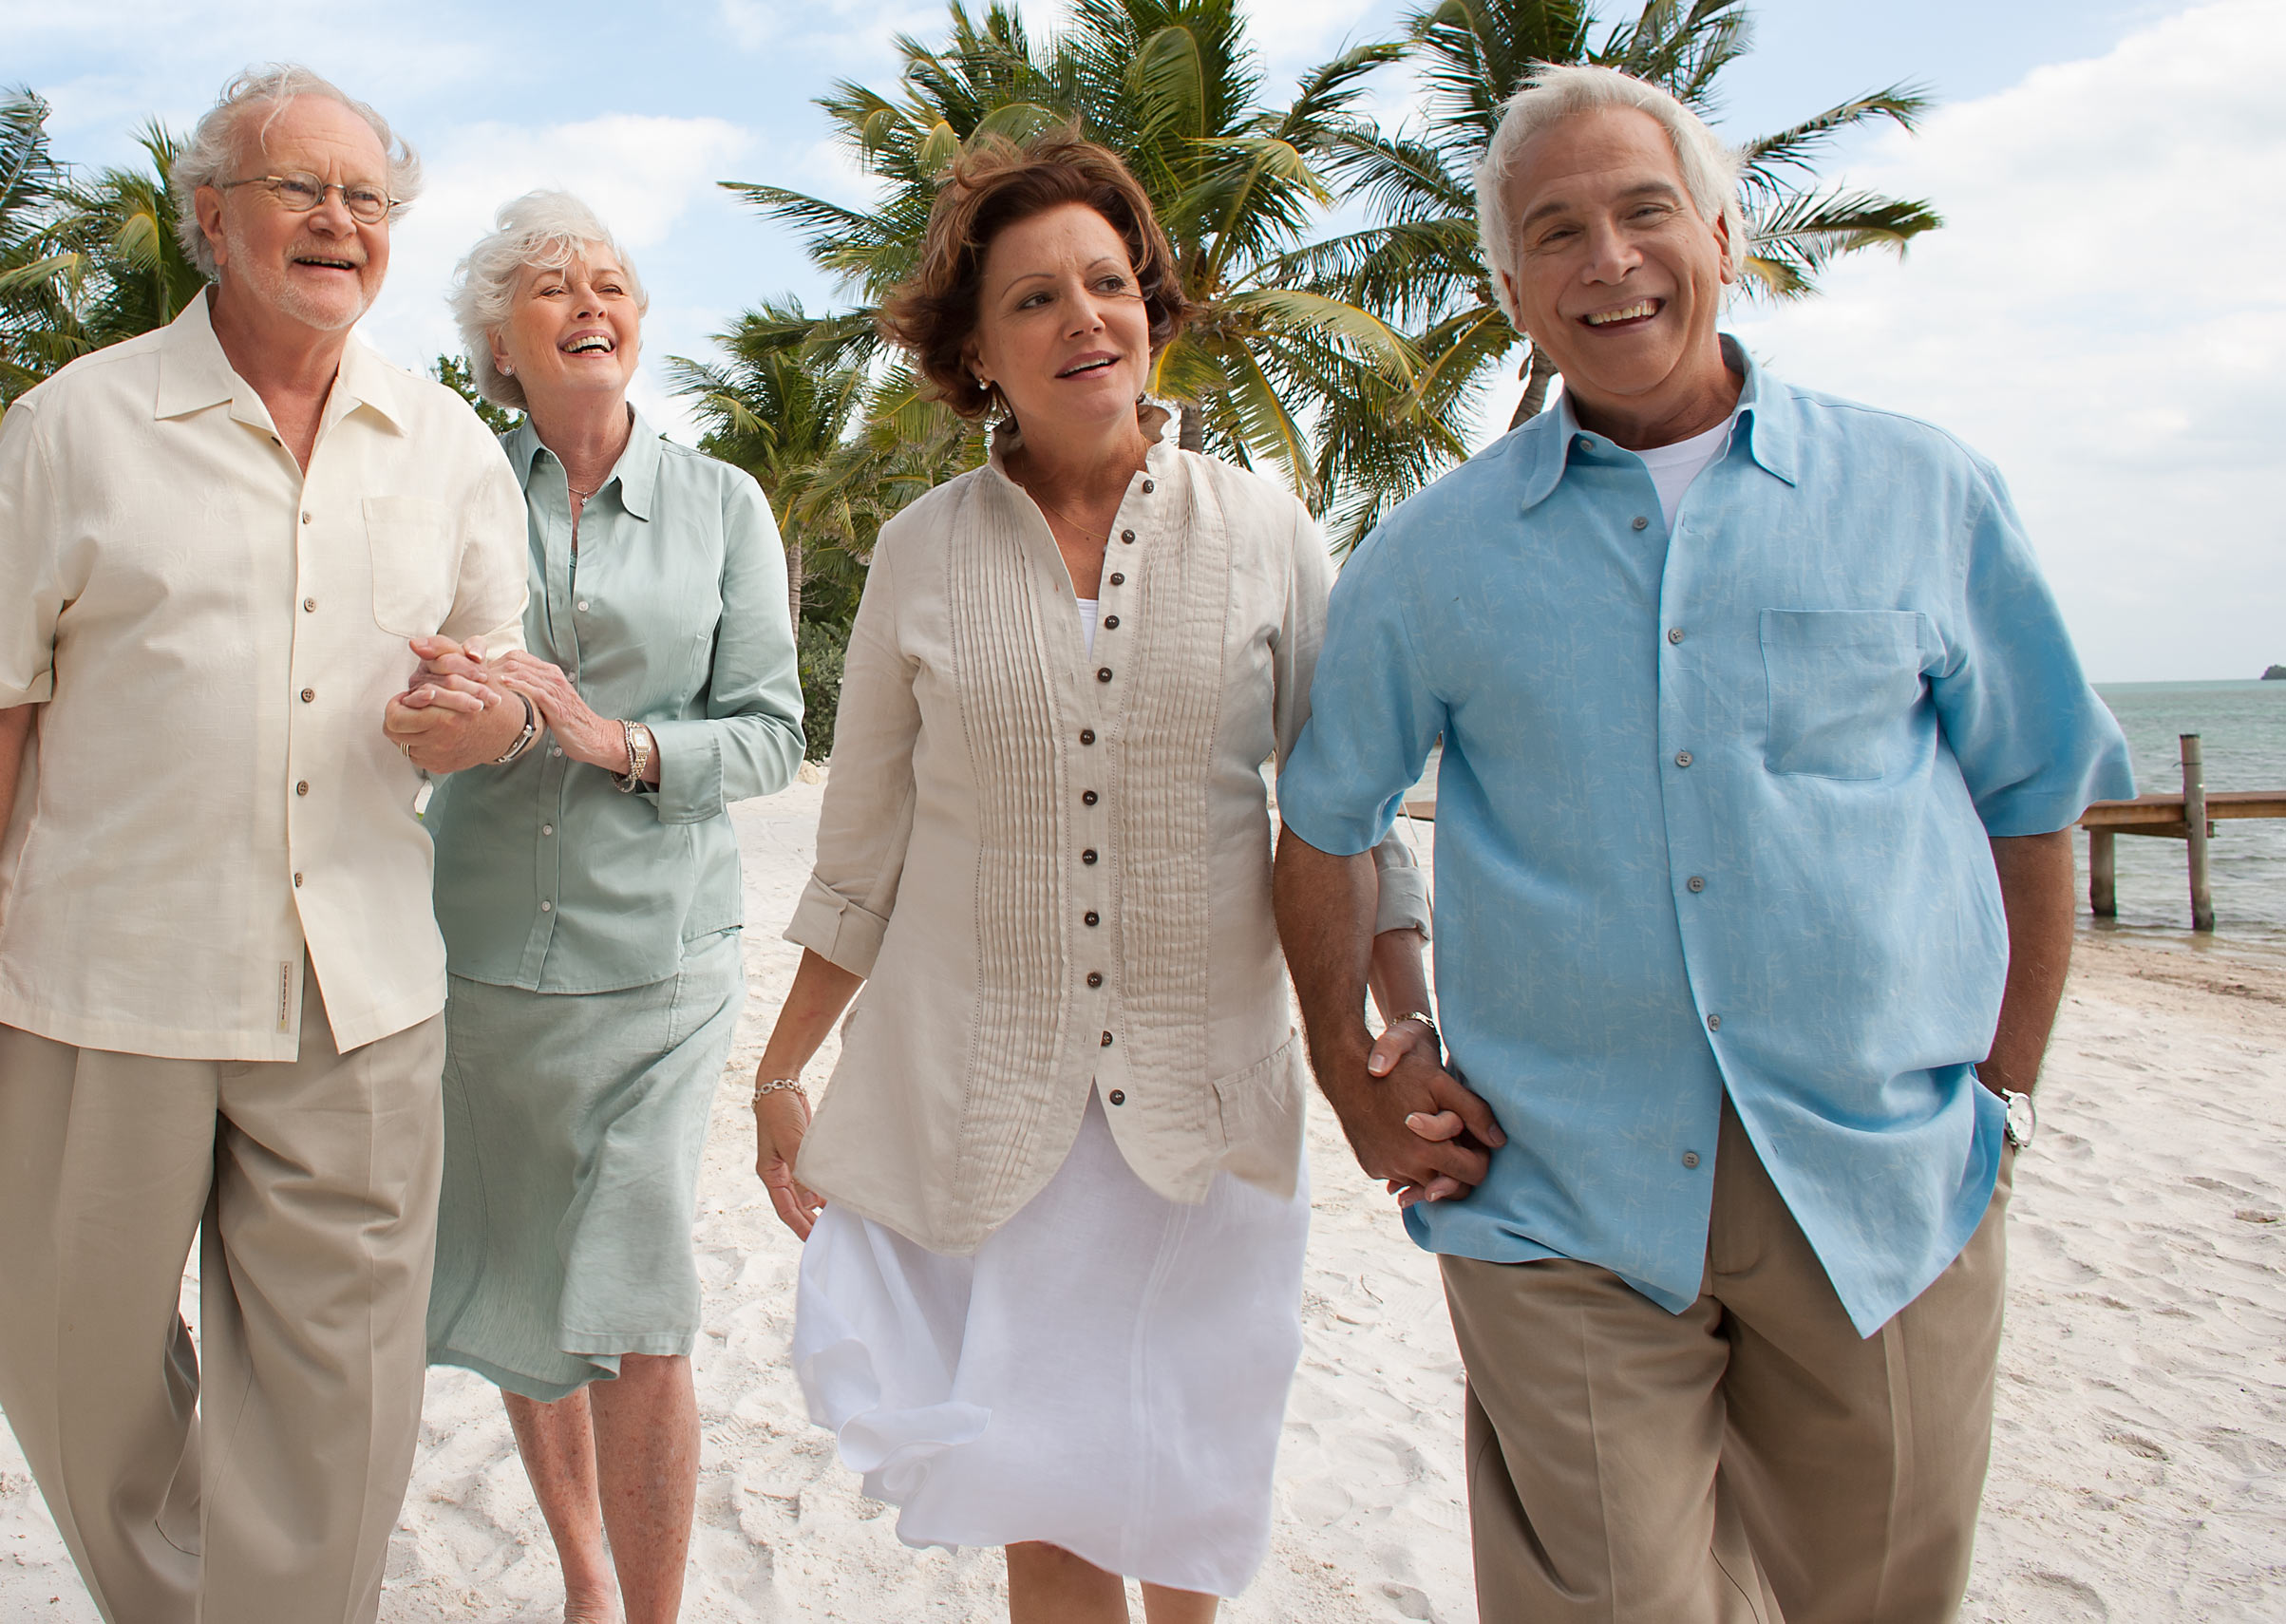 Seniors Walking on Beach